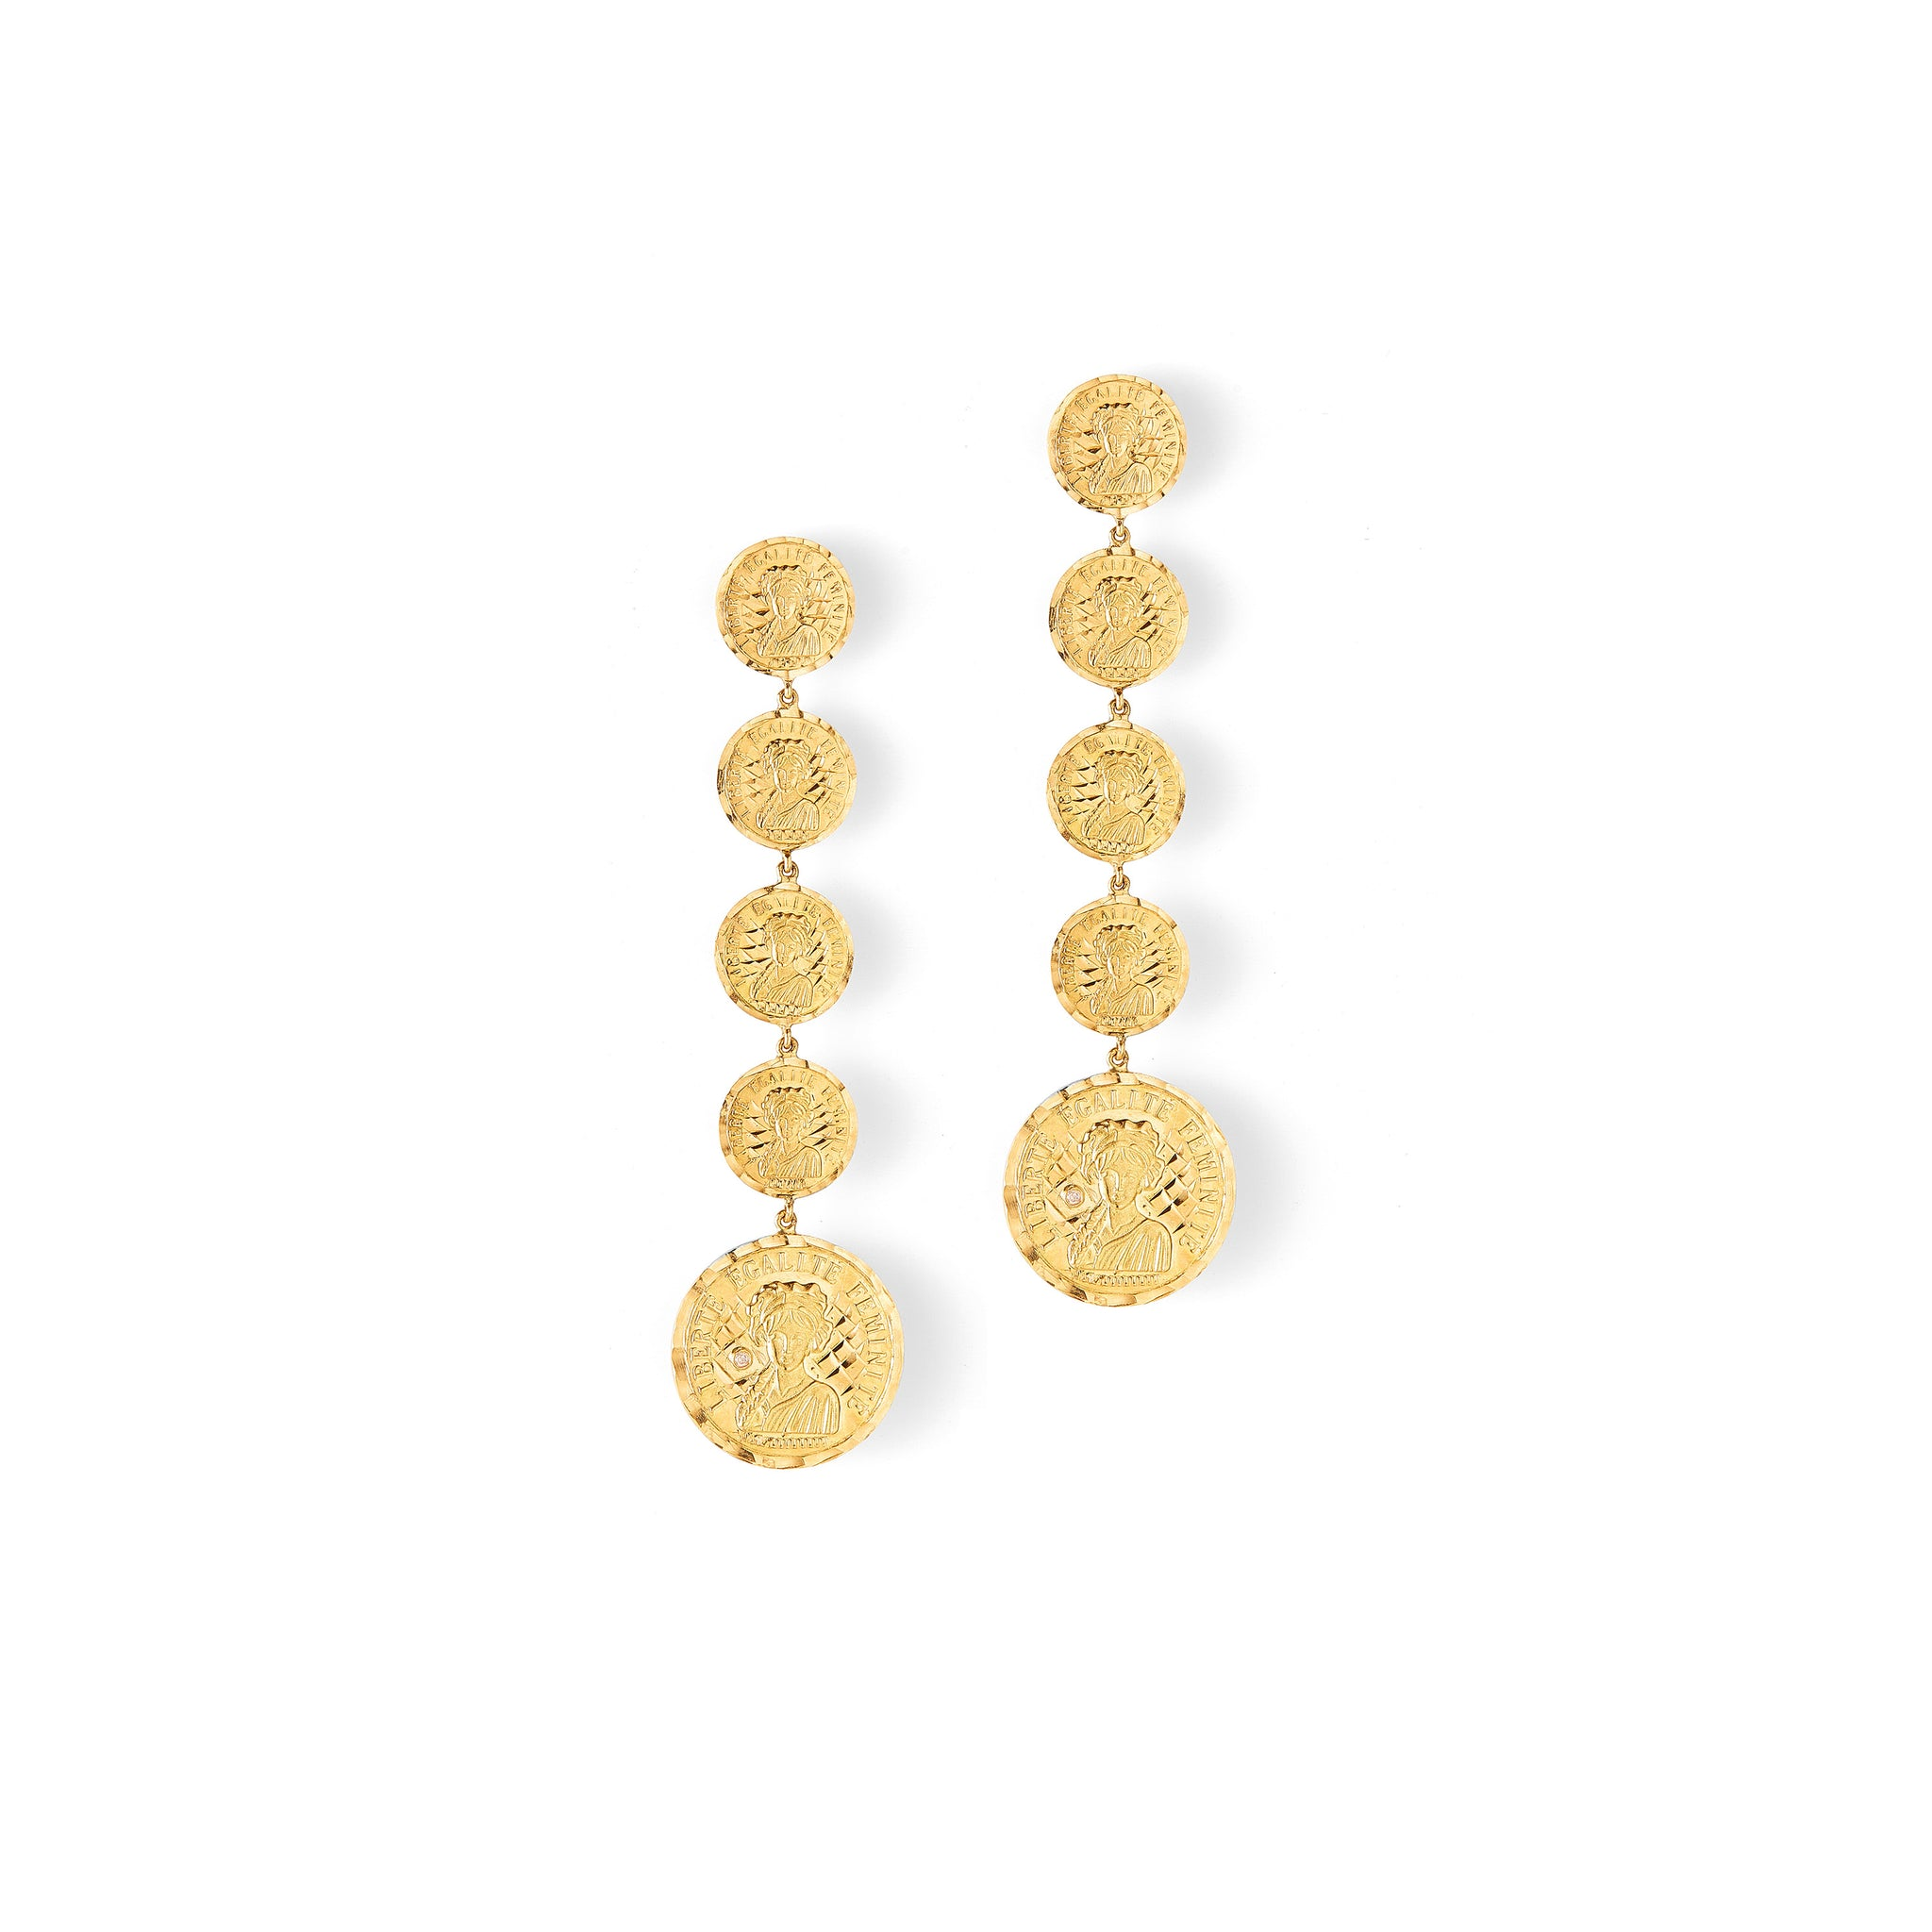 ANISSA KERMICHE - LOUISE D'OR INFINIE EARRINGS